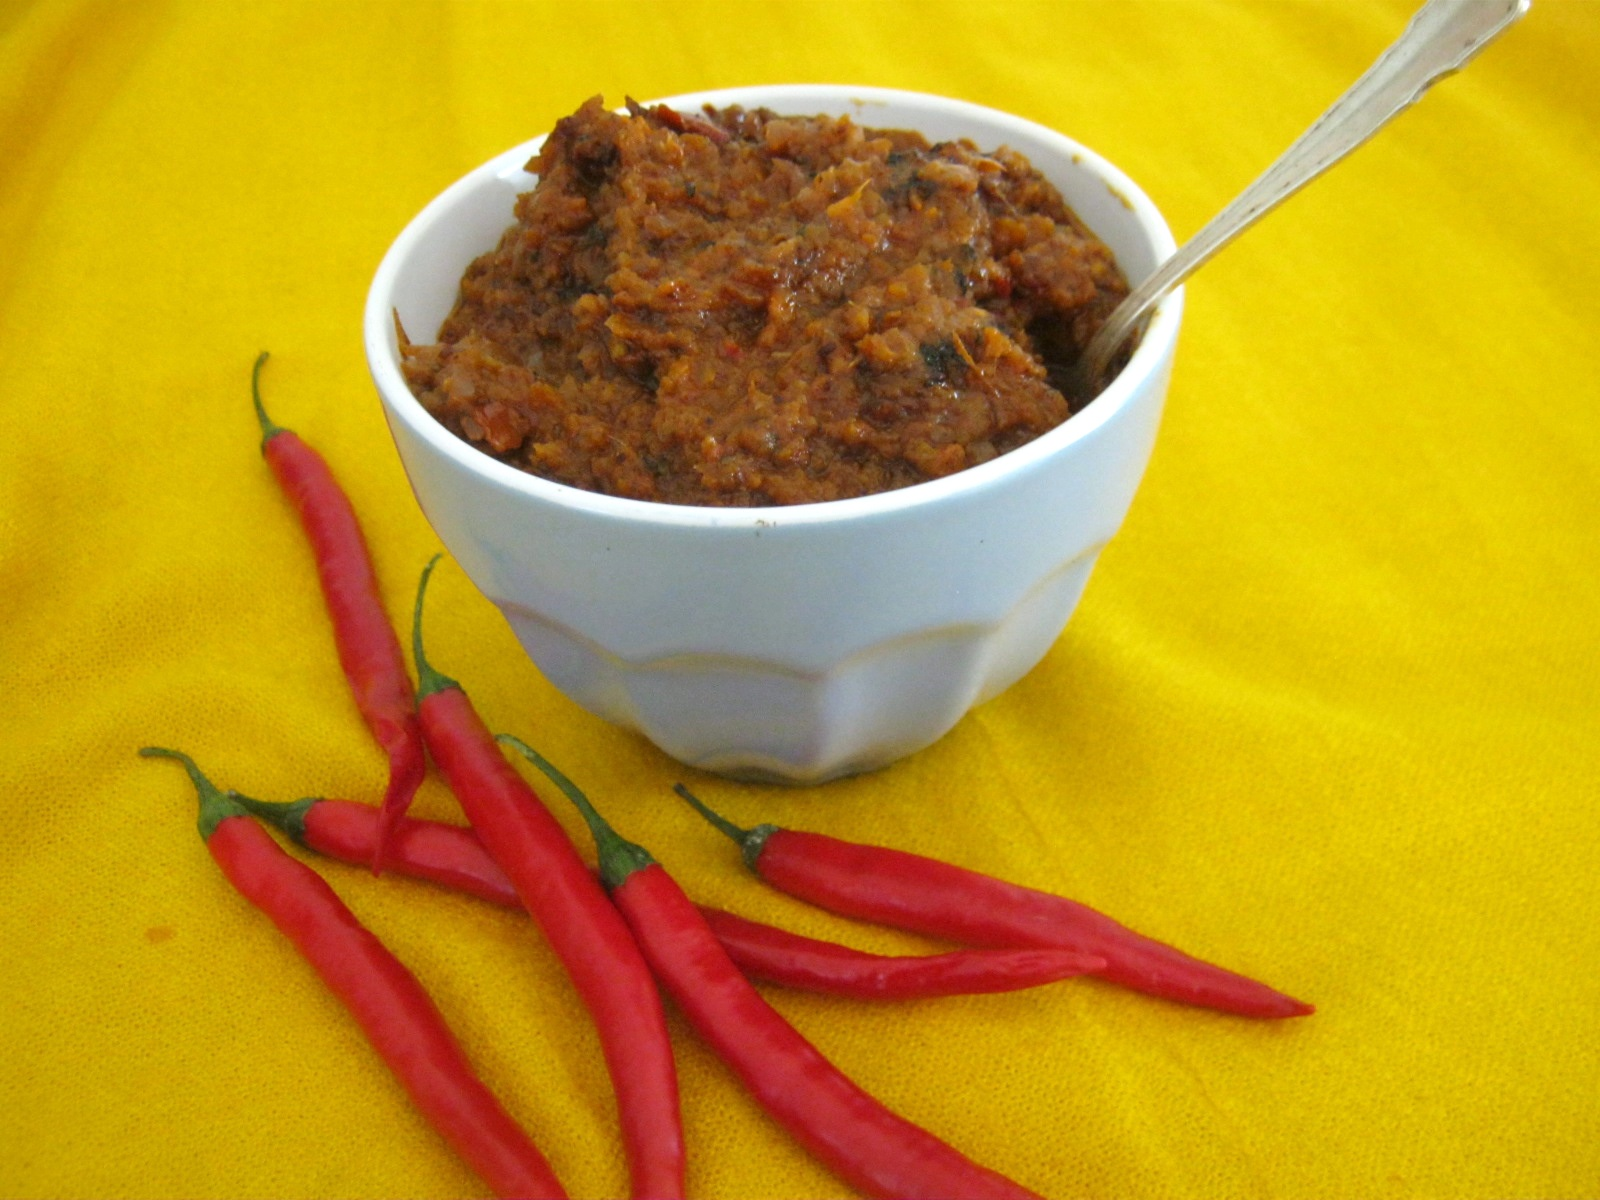 Shito hot Ghanaian pepper sauce and other condiments from around the world